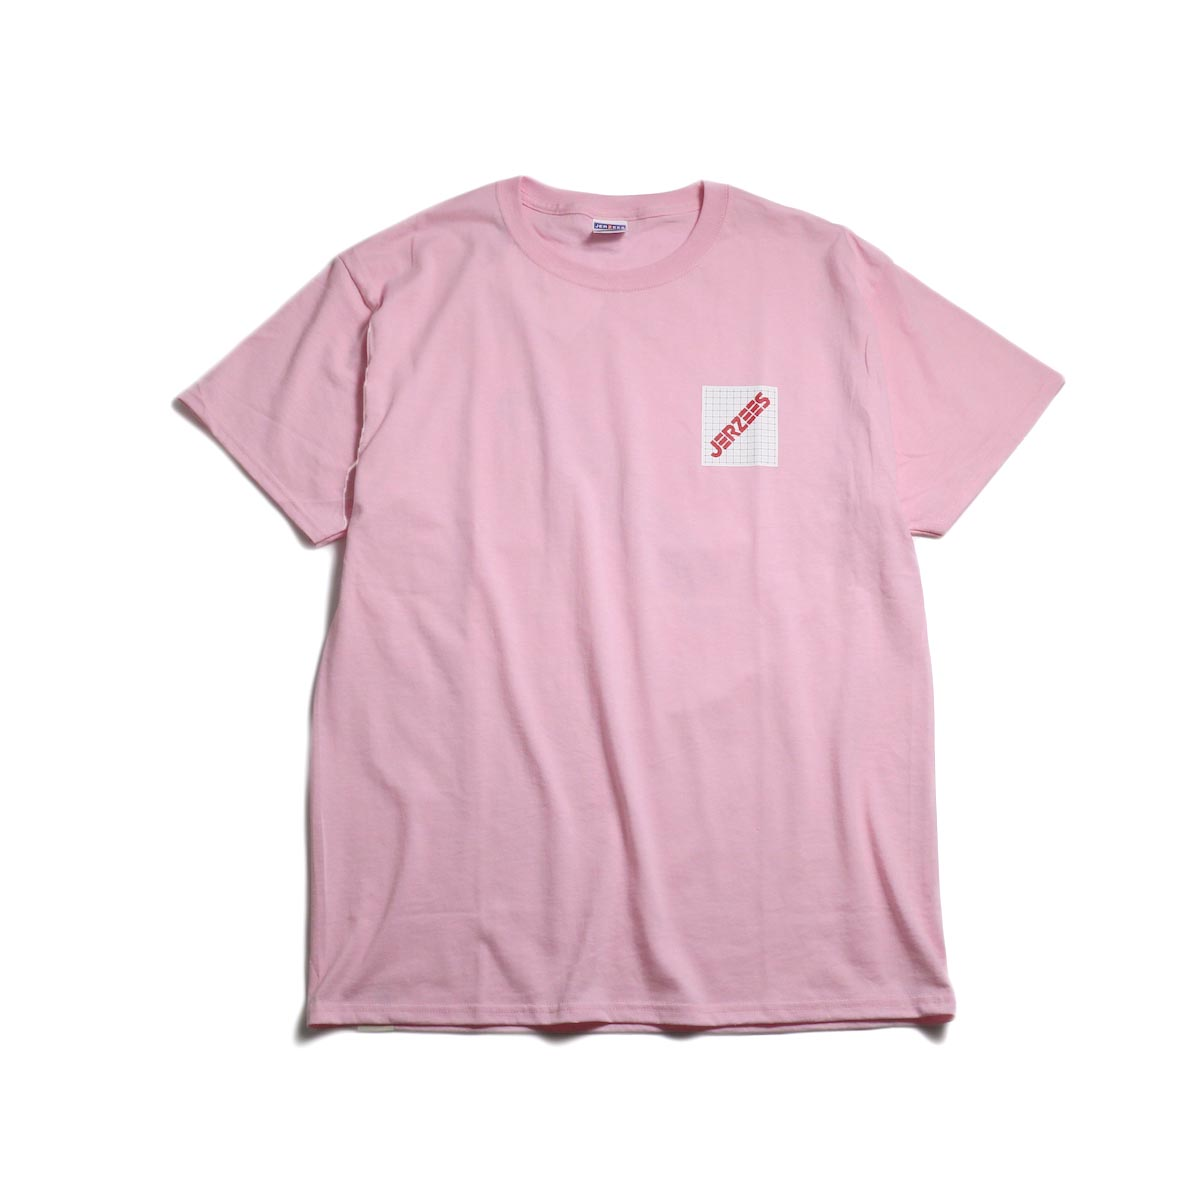 N.HOOLYWOOD × JERZEES  / 191-CS44-070 Short Sleeve Tee -Pink